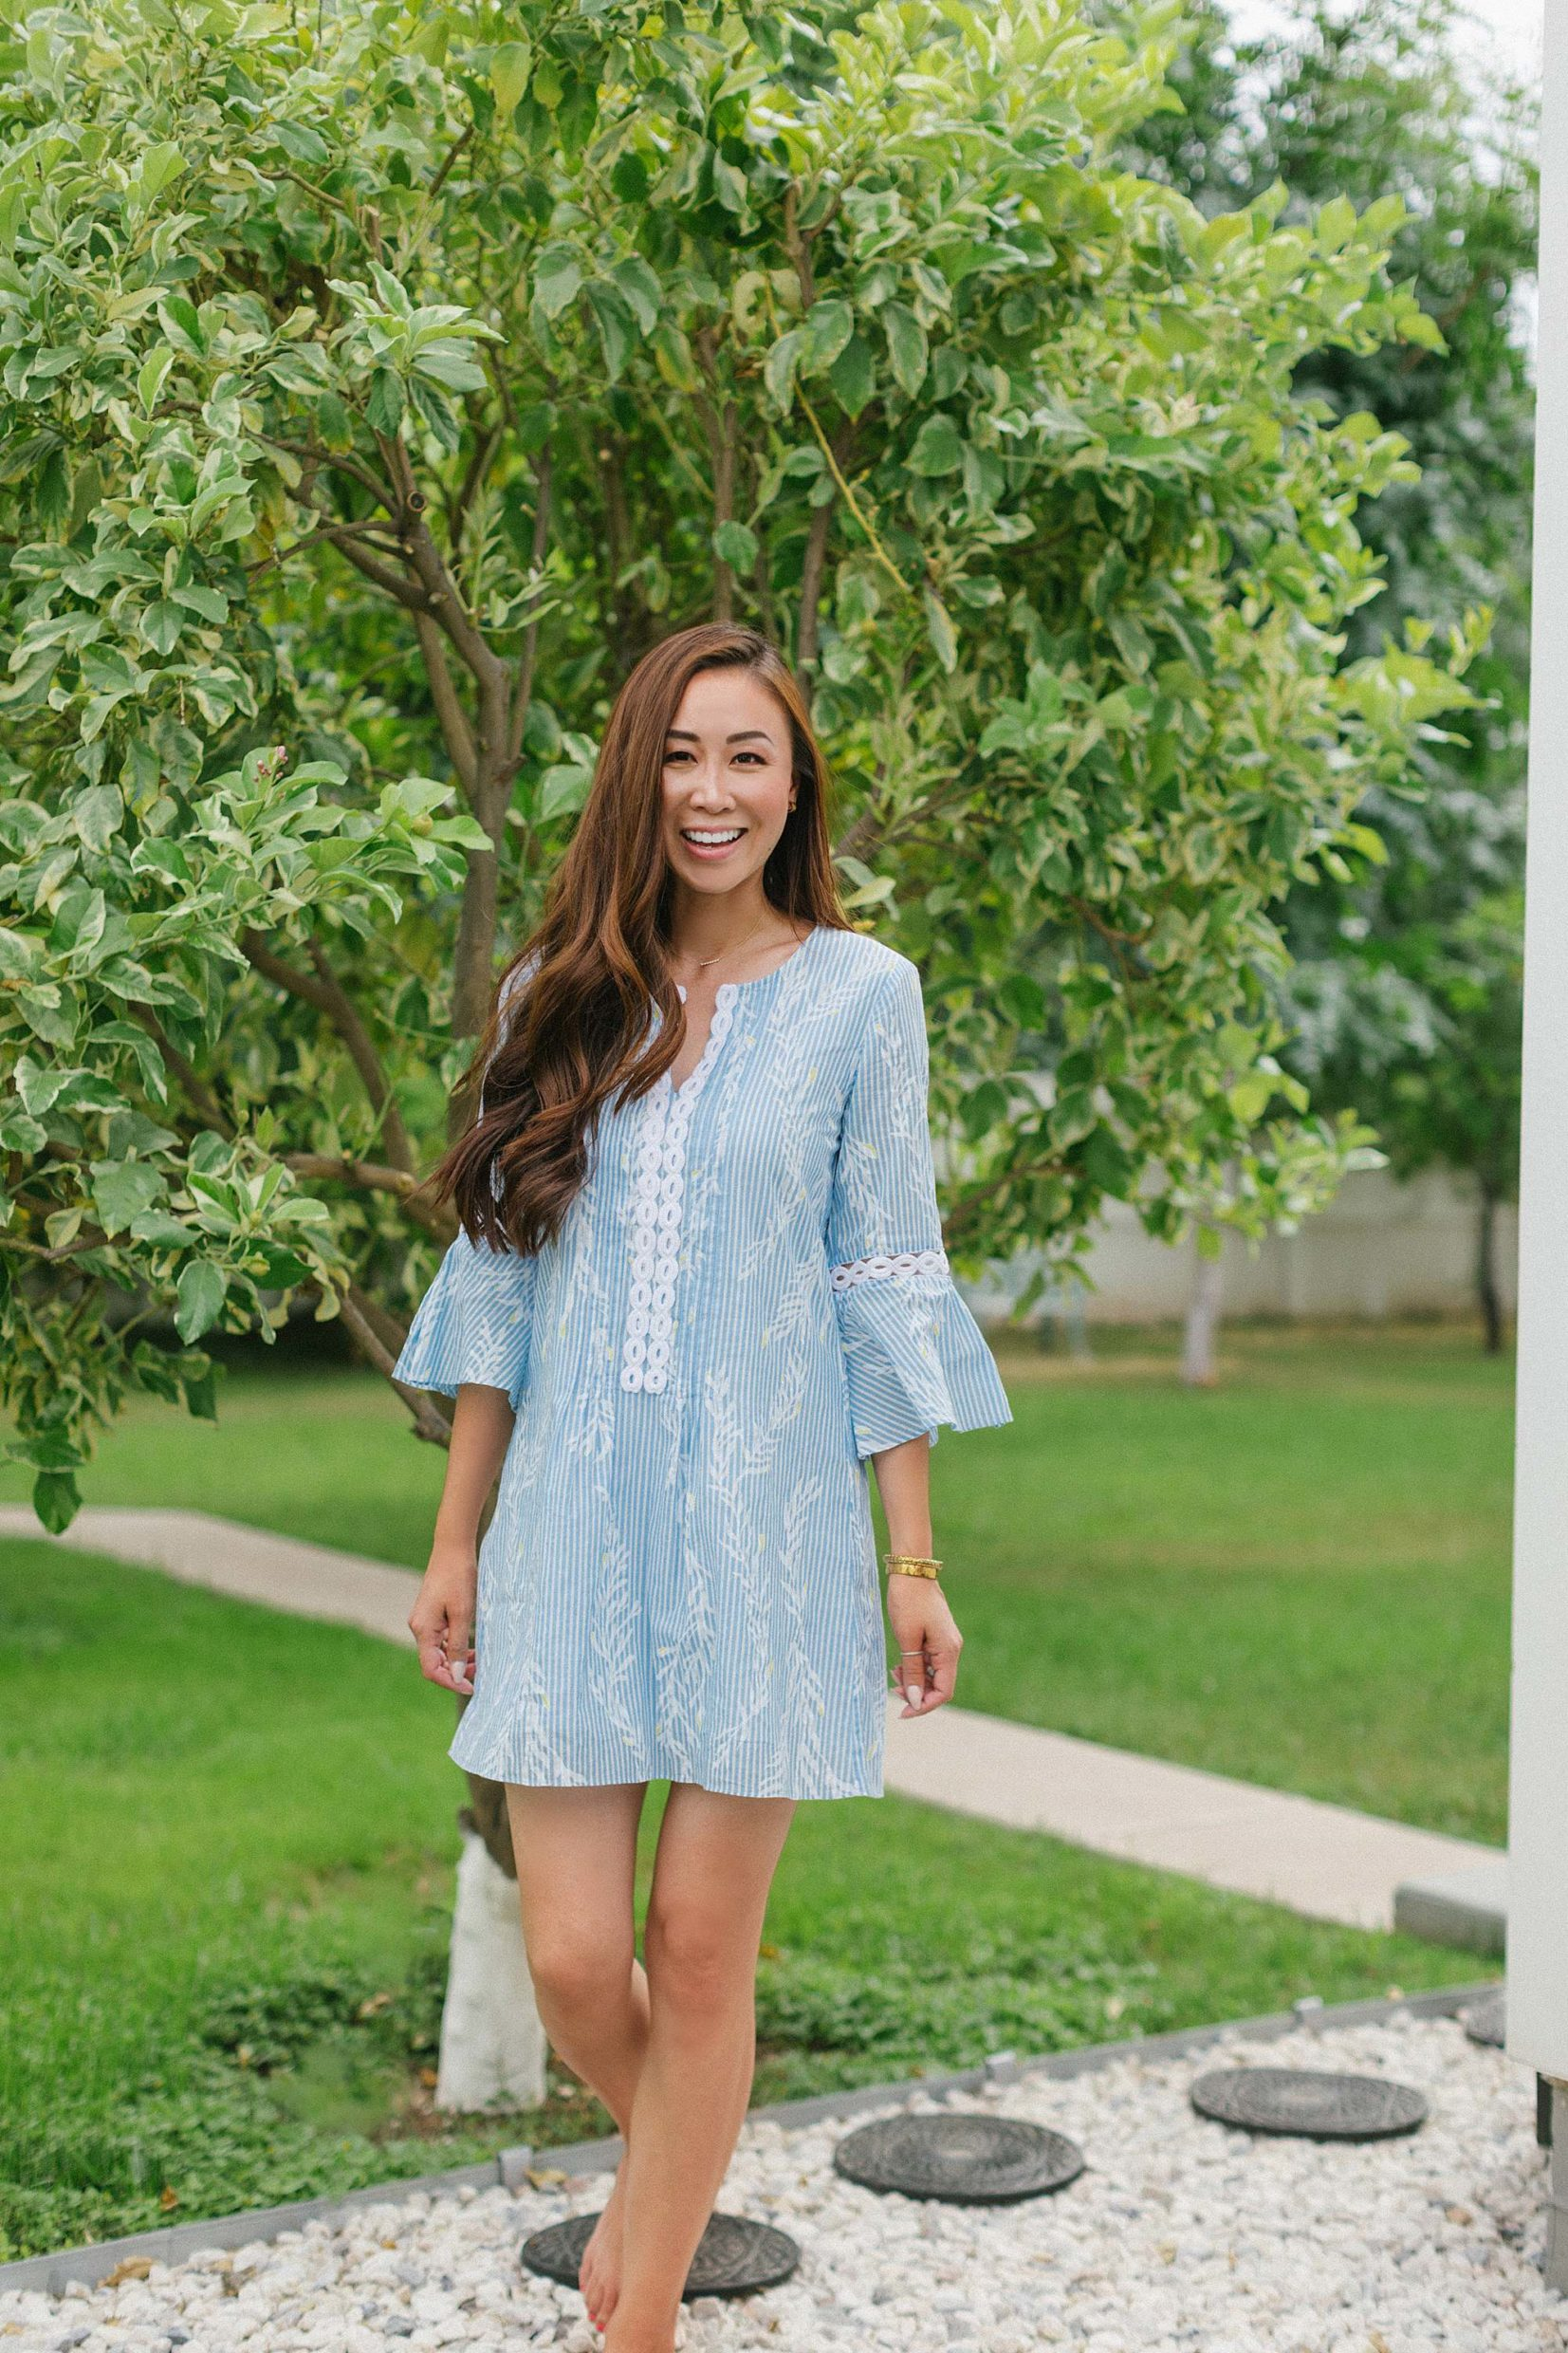 Hollie Tunic Dress lightweight cotton dress Lilly Pulitzer on Diana Elizabeth standing in orchard in backyard